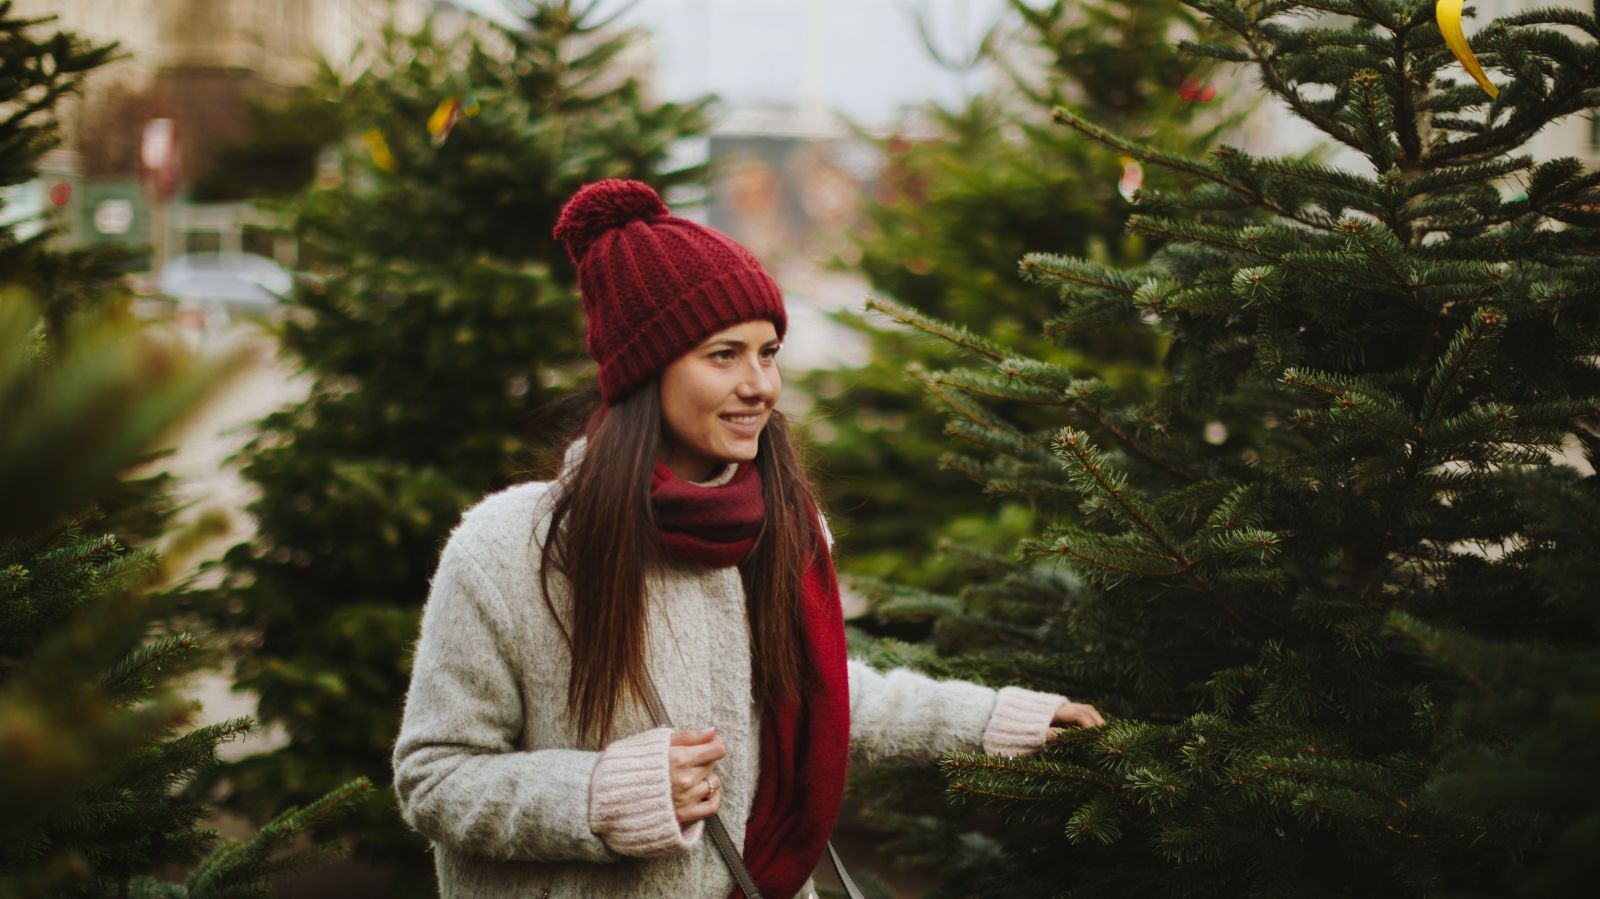 Finding a Christmas tree